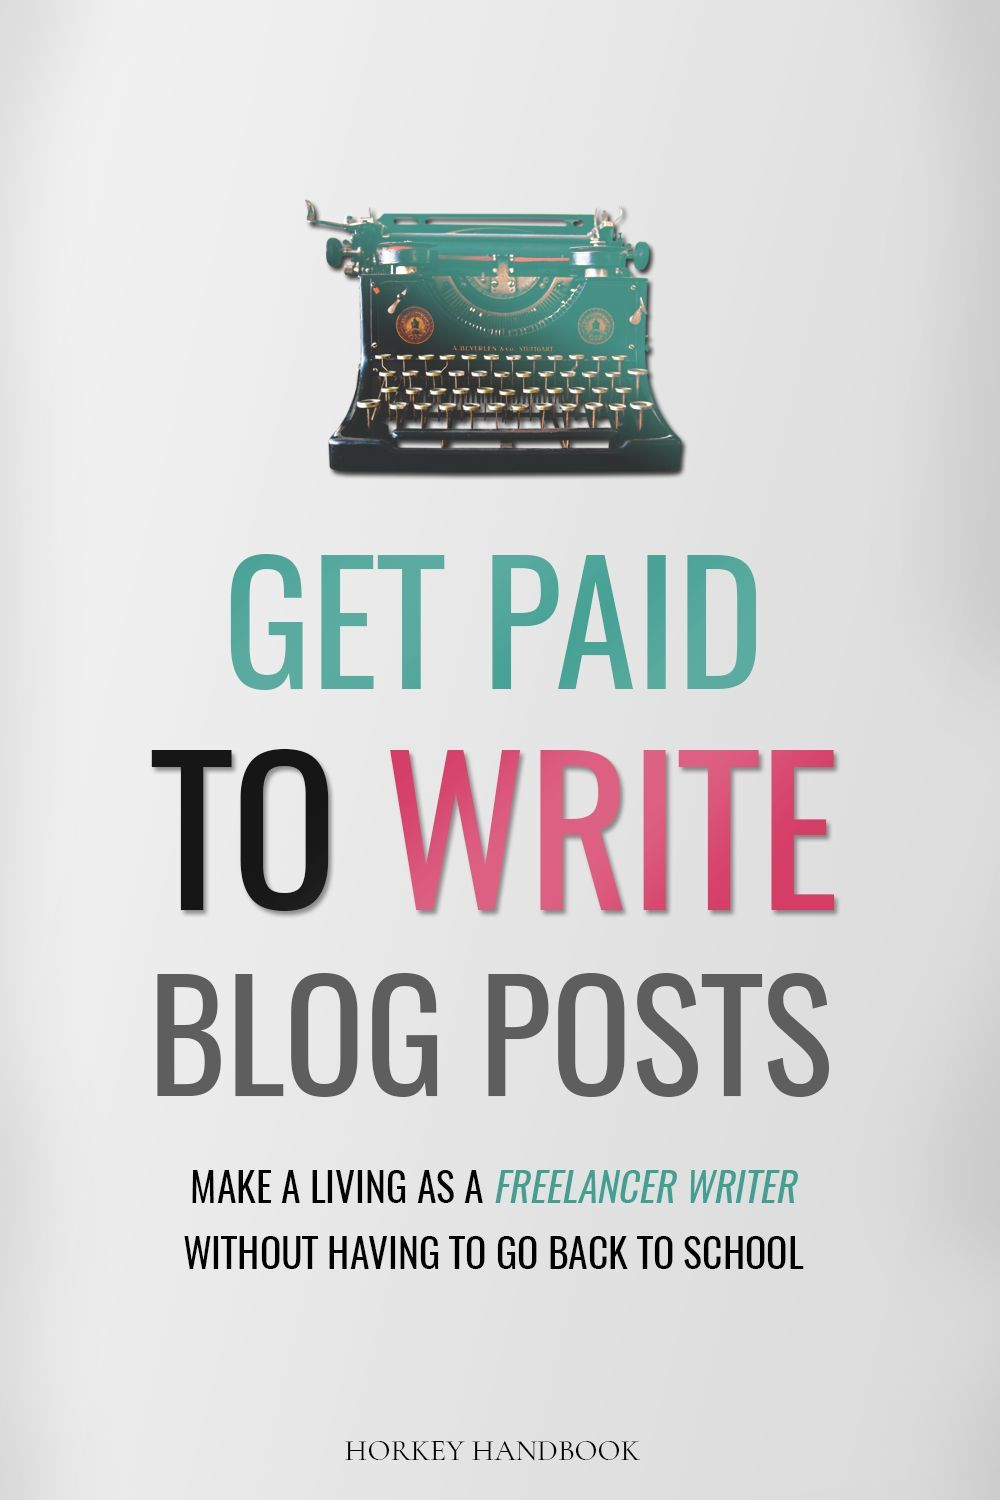 Want to a freelance writer and make money from home